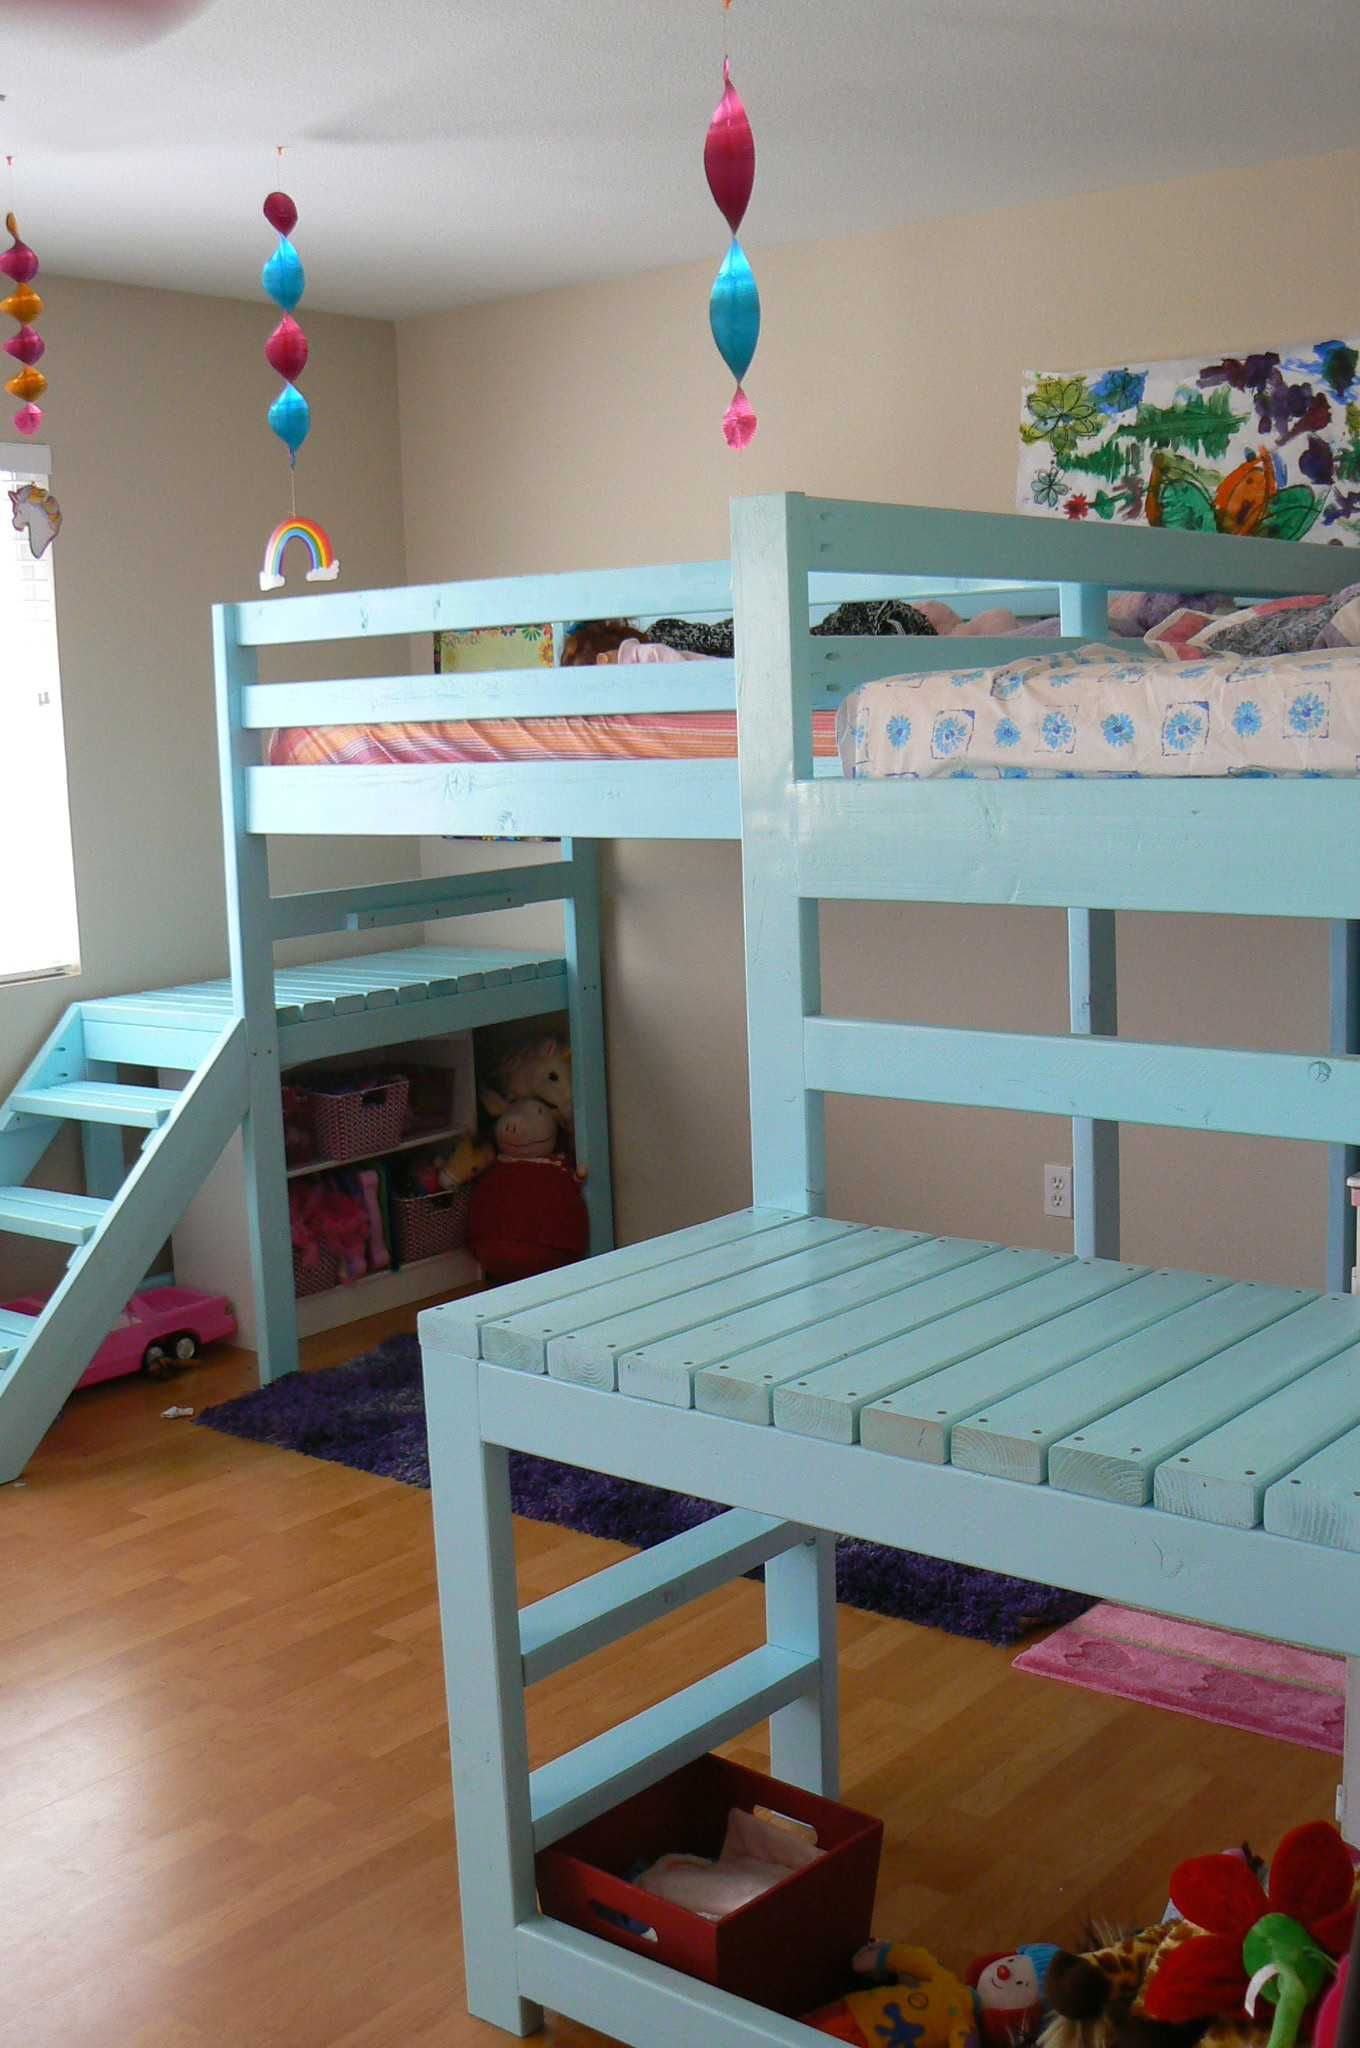 See An Inspiration Of A Diy L Shaped Loft Bed Loft bed